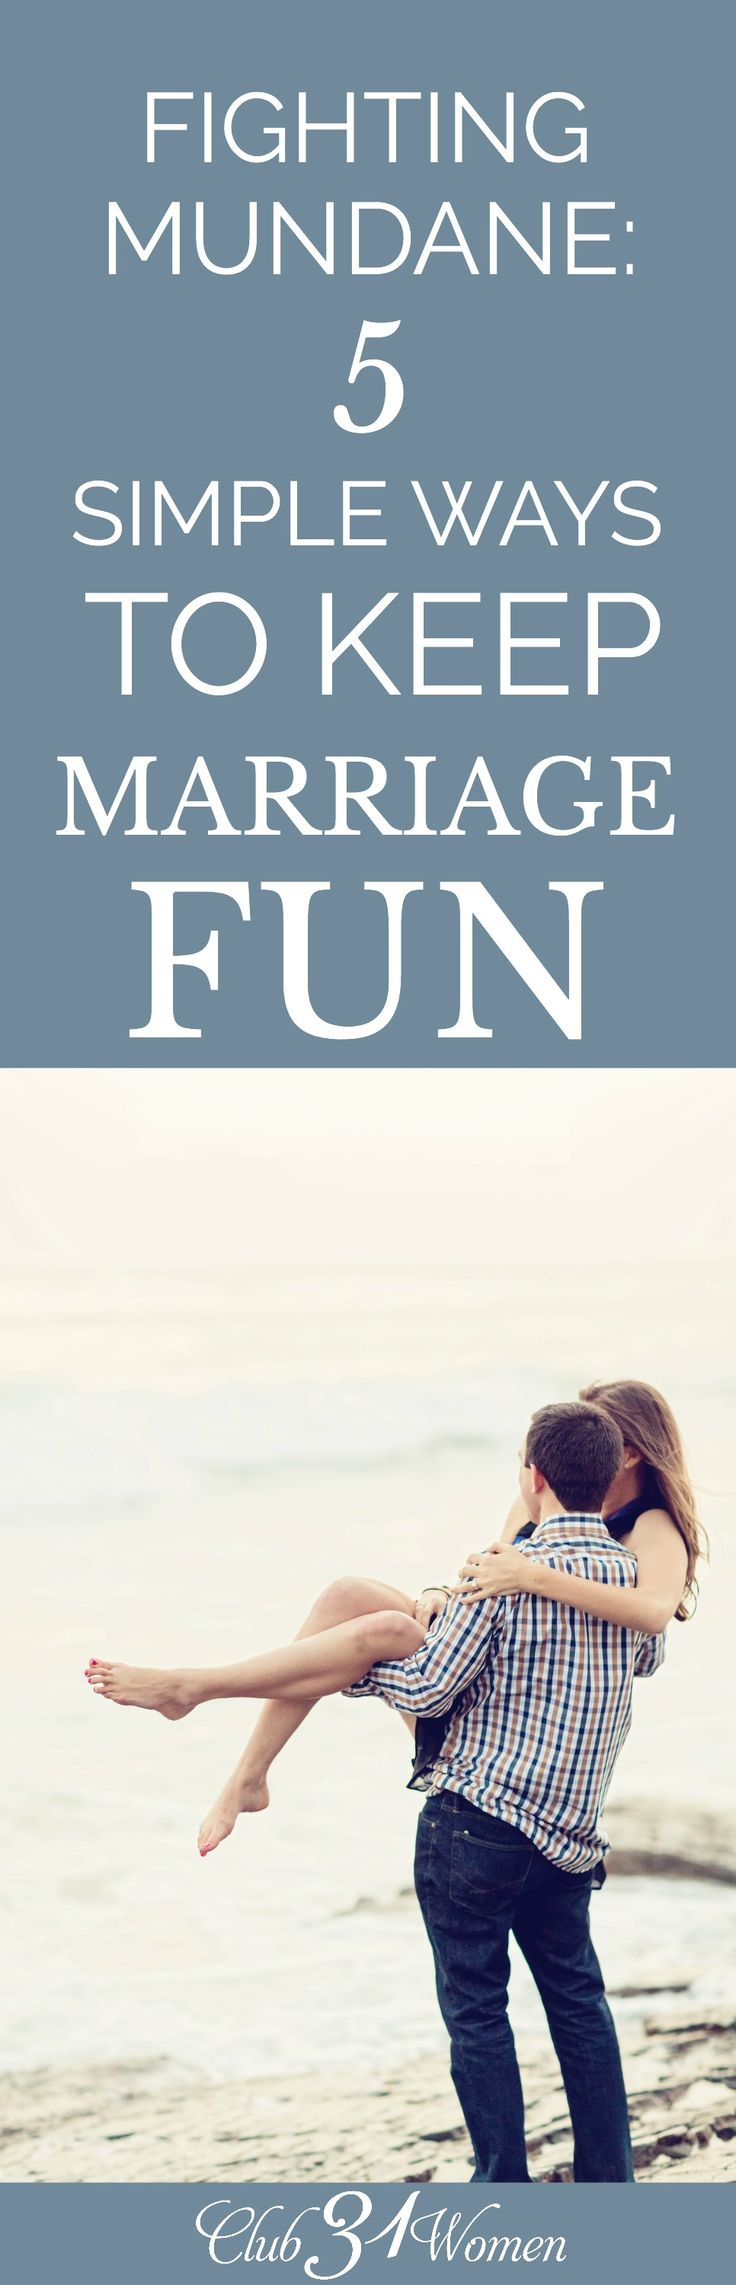 Building a marriage and raising a family is hard work and often requires us to make time and space to just stop and have a little fun. Here are some ideas! via @Club31Women